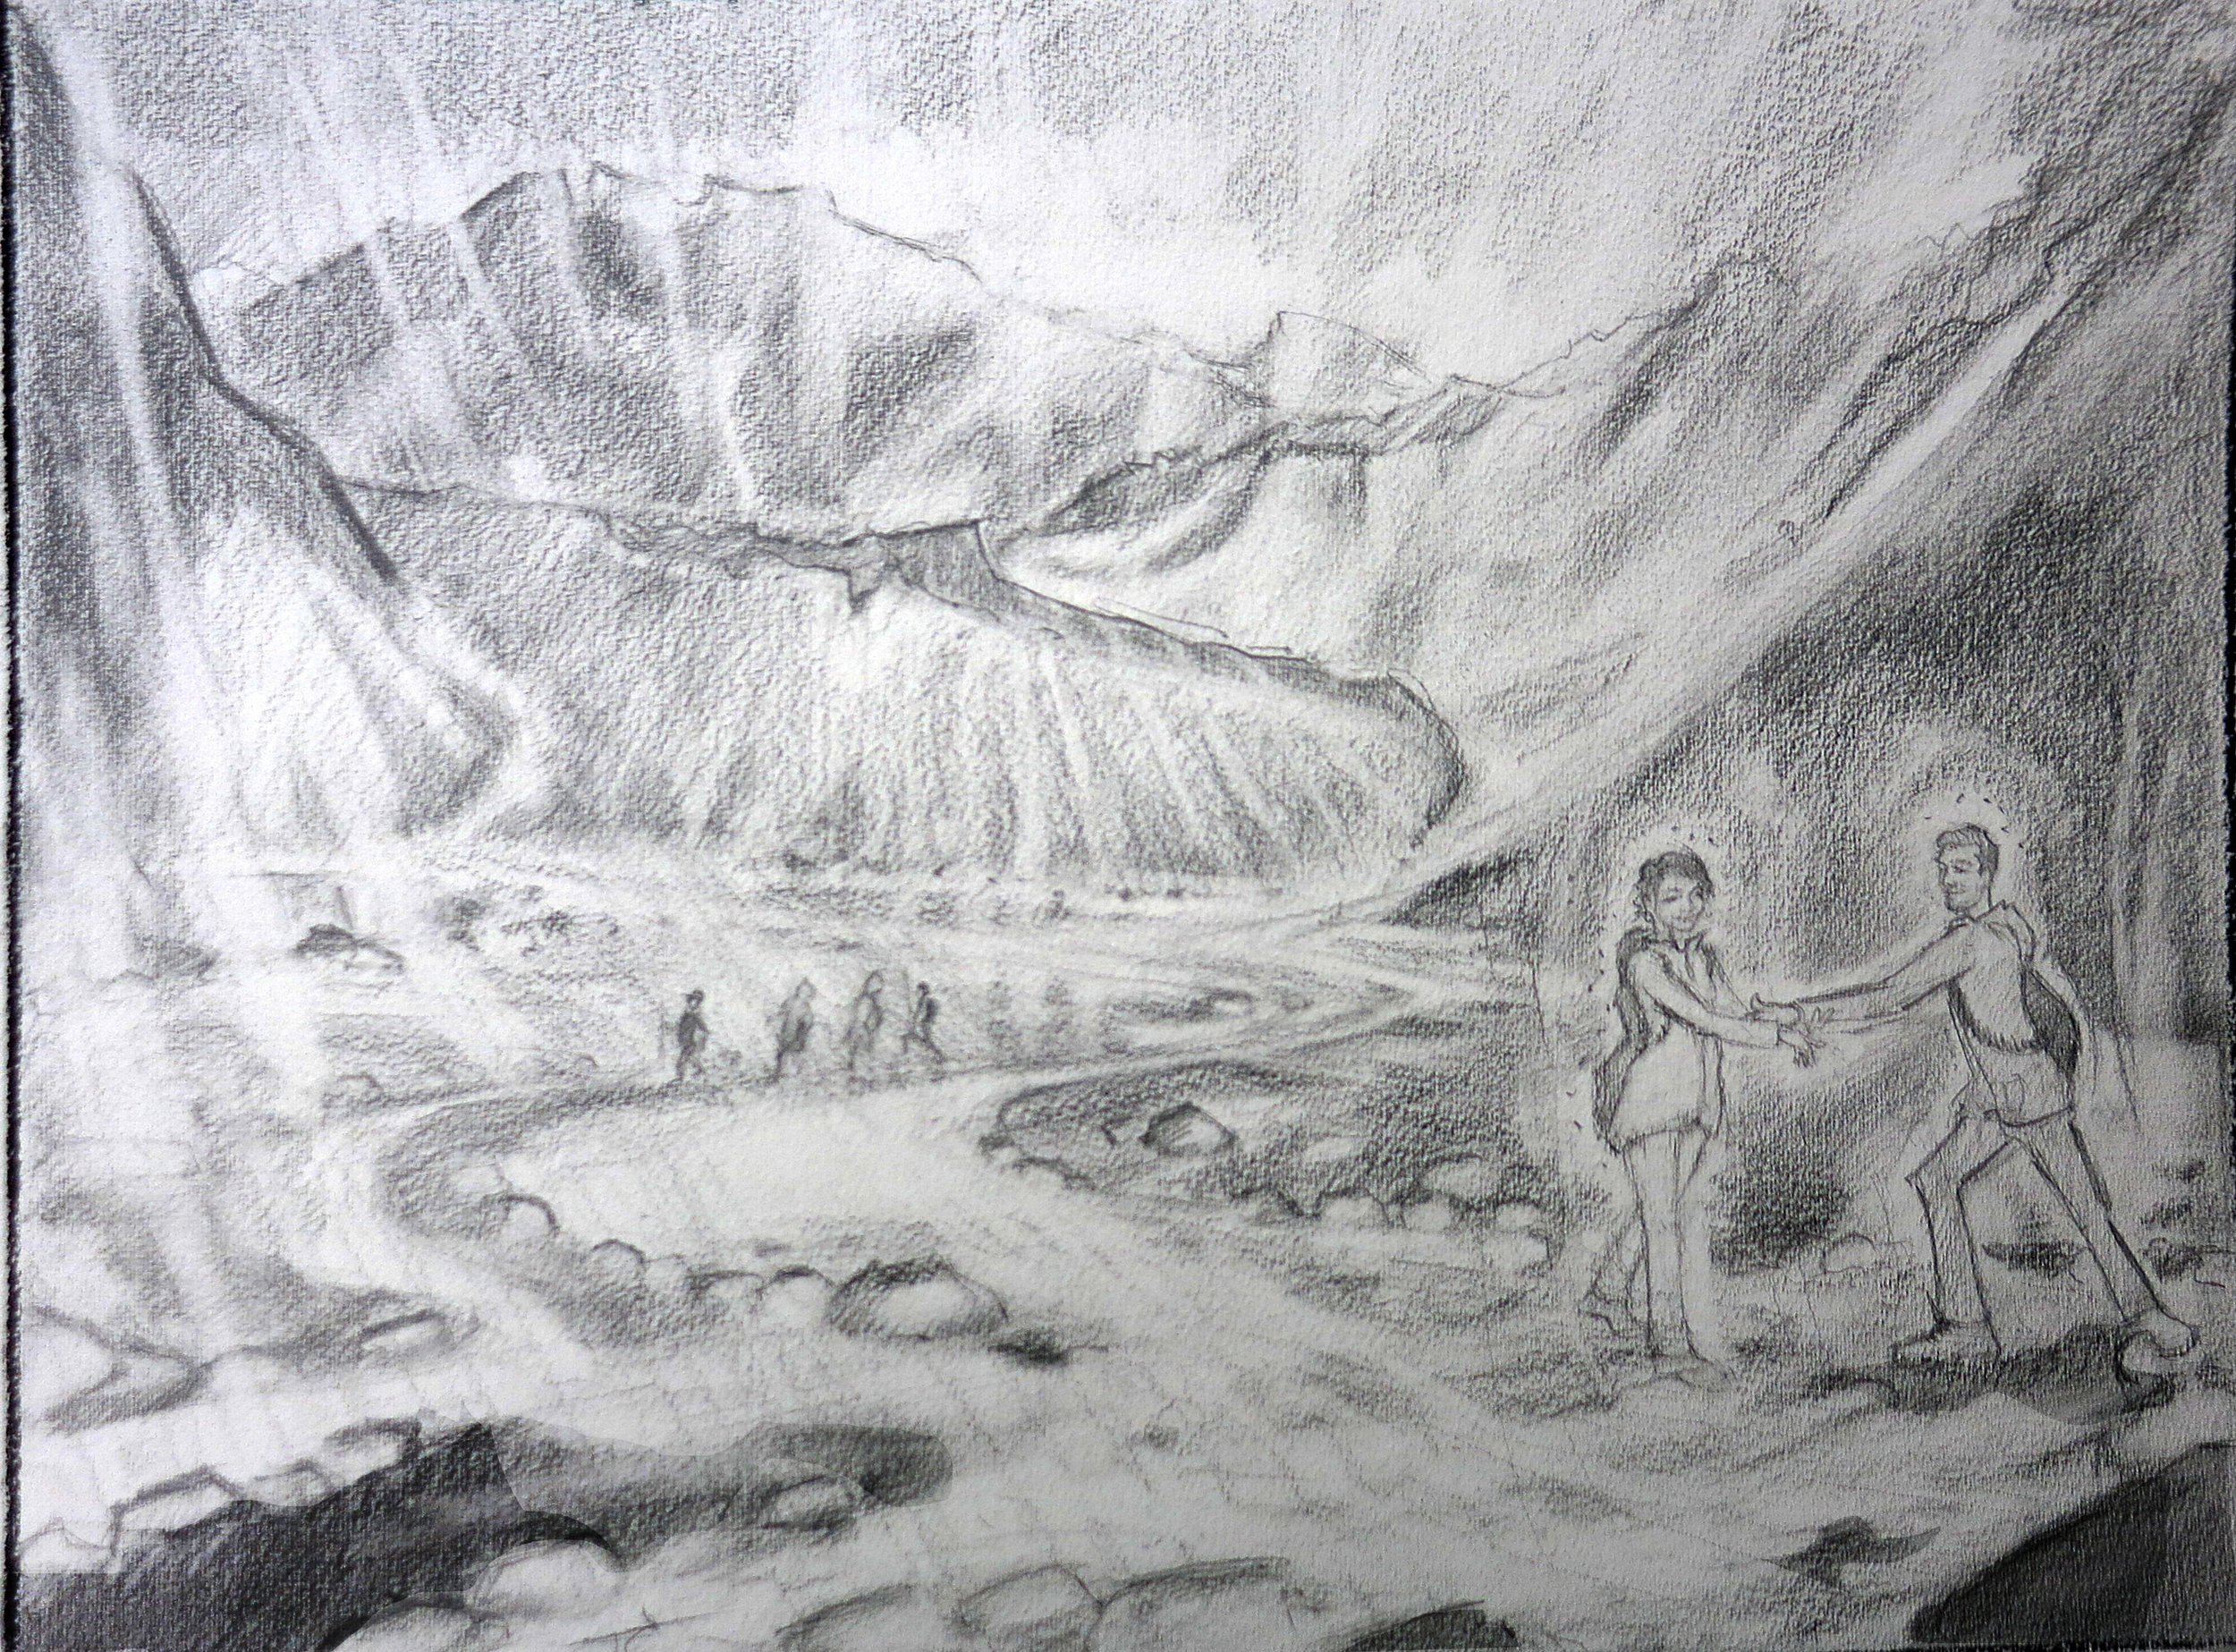 Justin C. adjusted the initial sketch because Deepika wanted to show her husband helping her cross the stream.